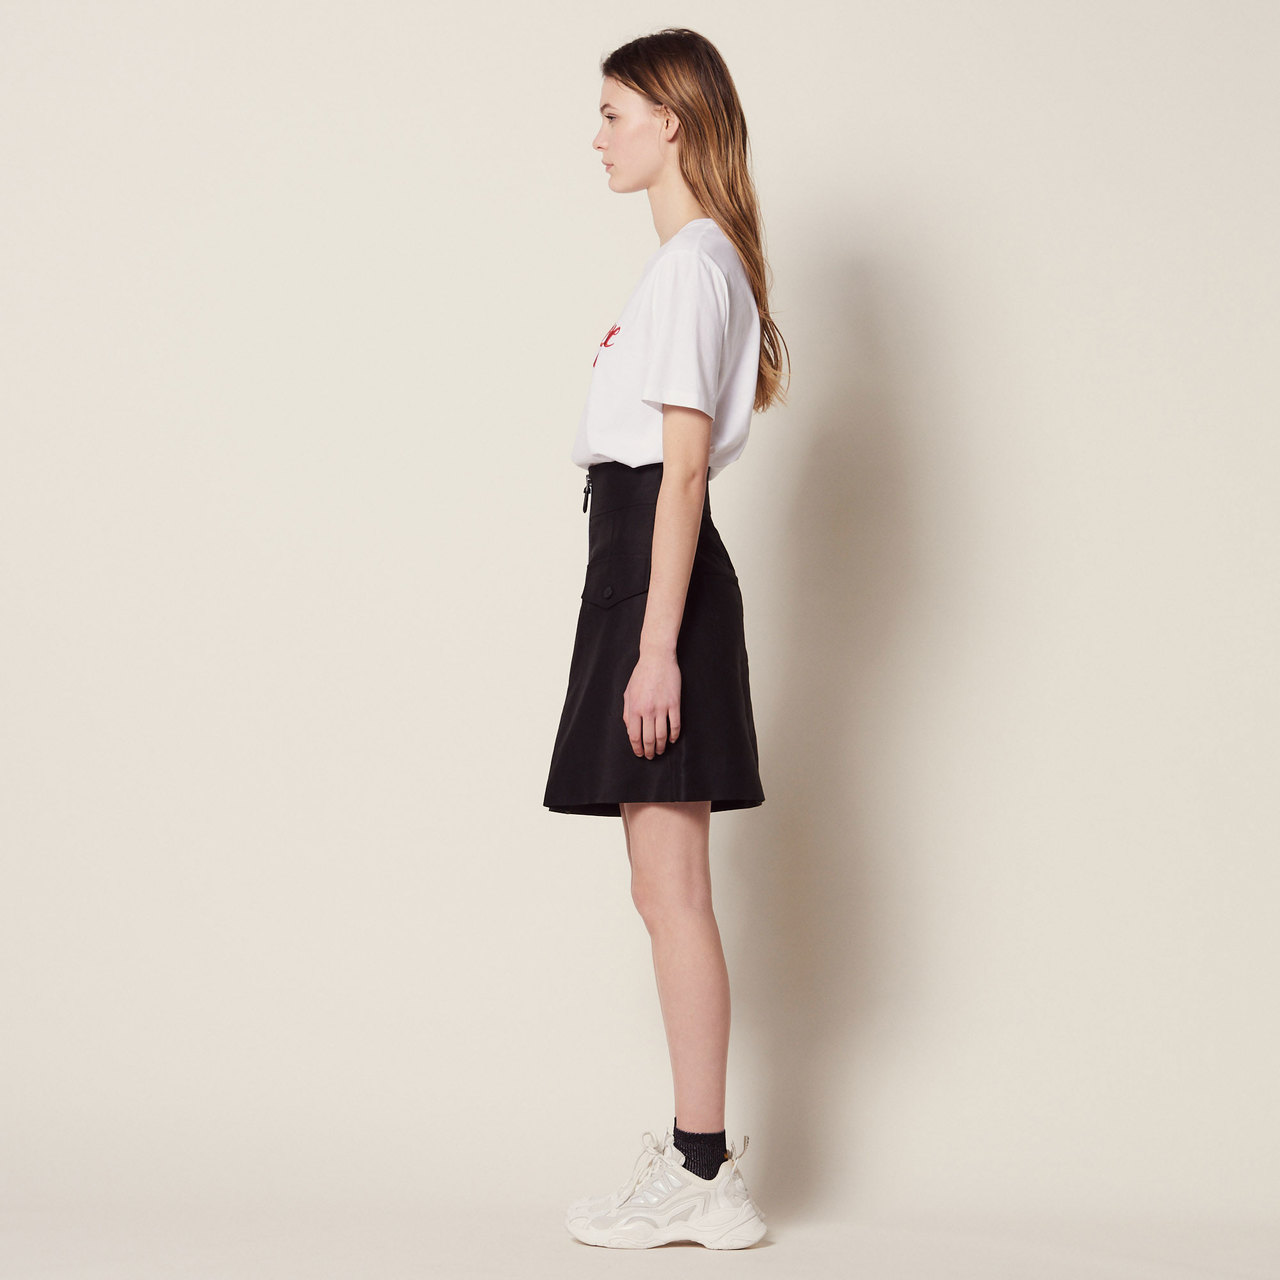 High Waisted Skirt With Contrasting Zip - Black